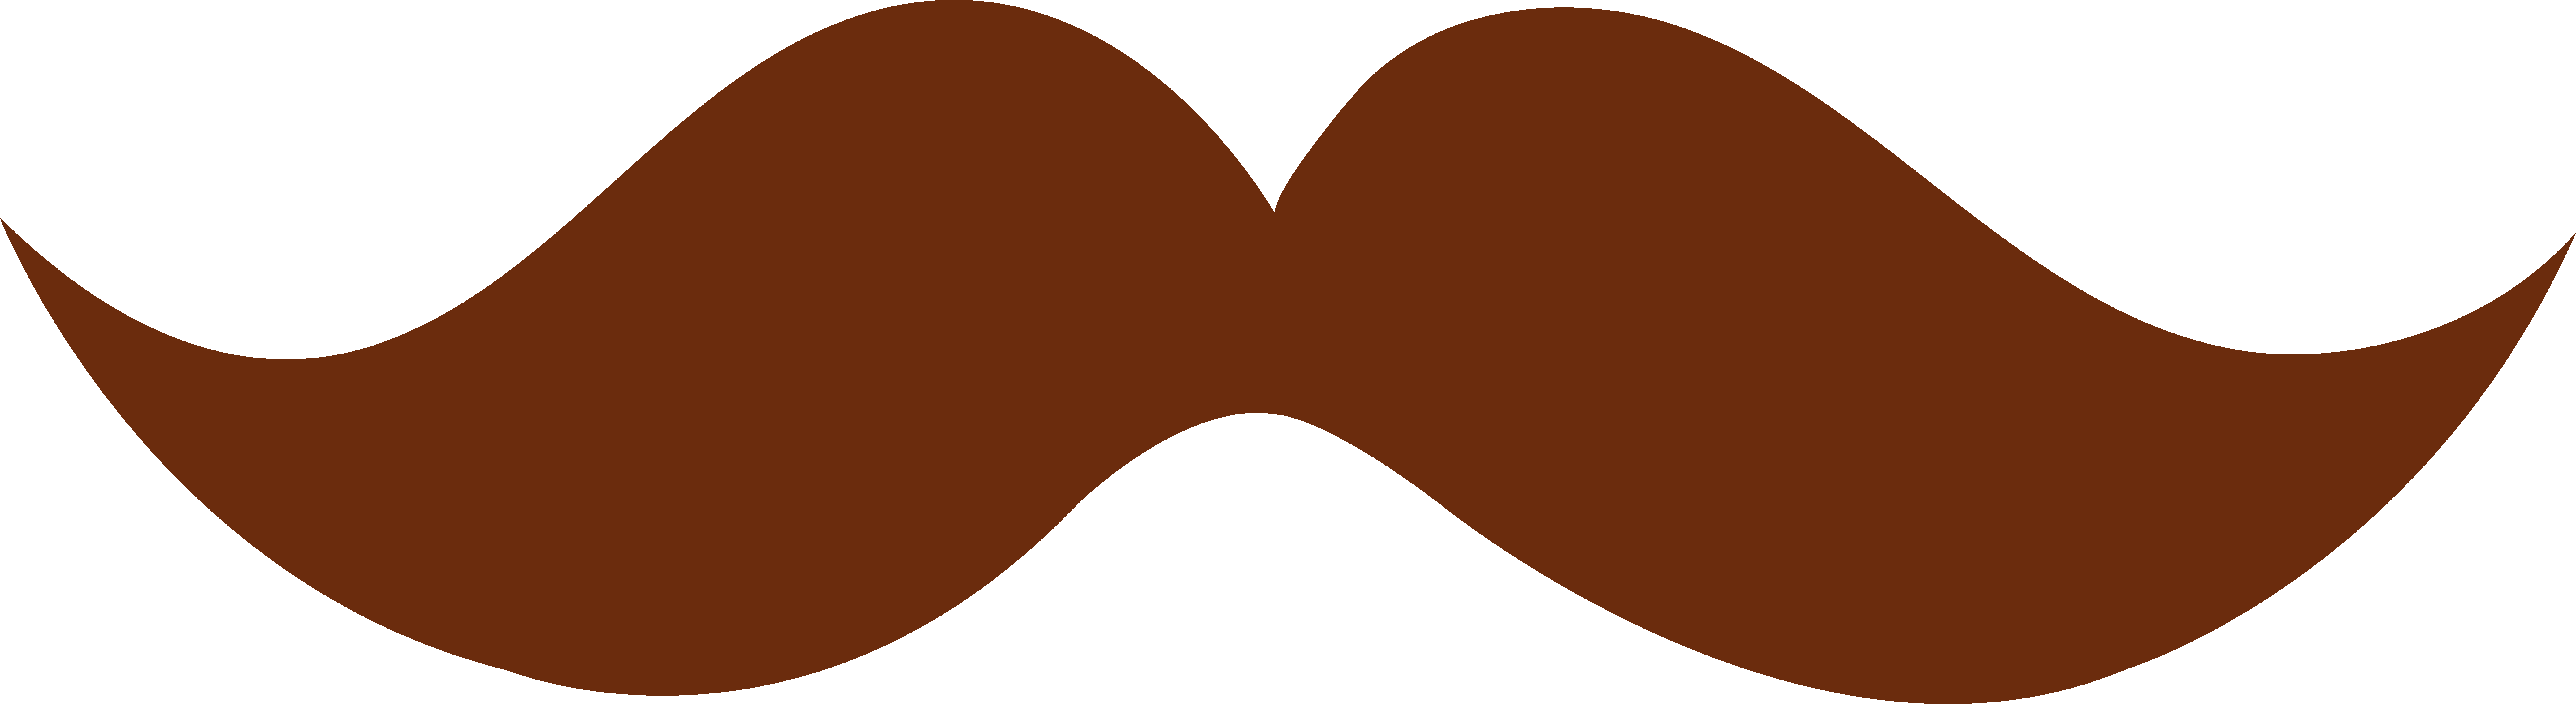 Moustache clipart brown. Hipster at getdrawings com